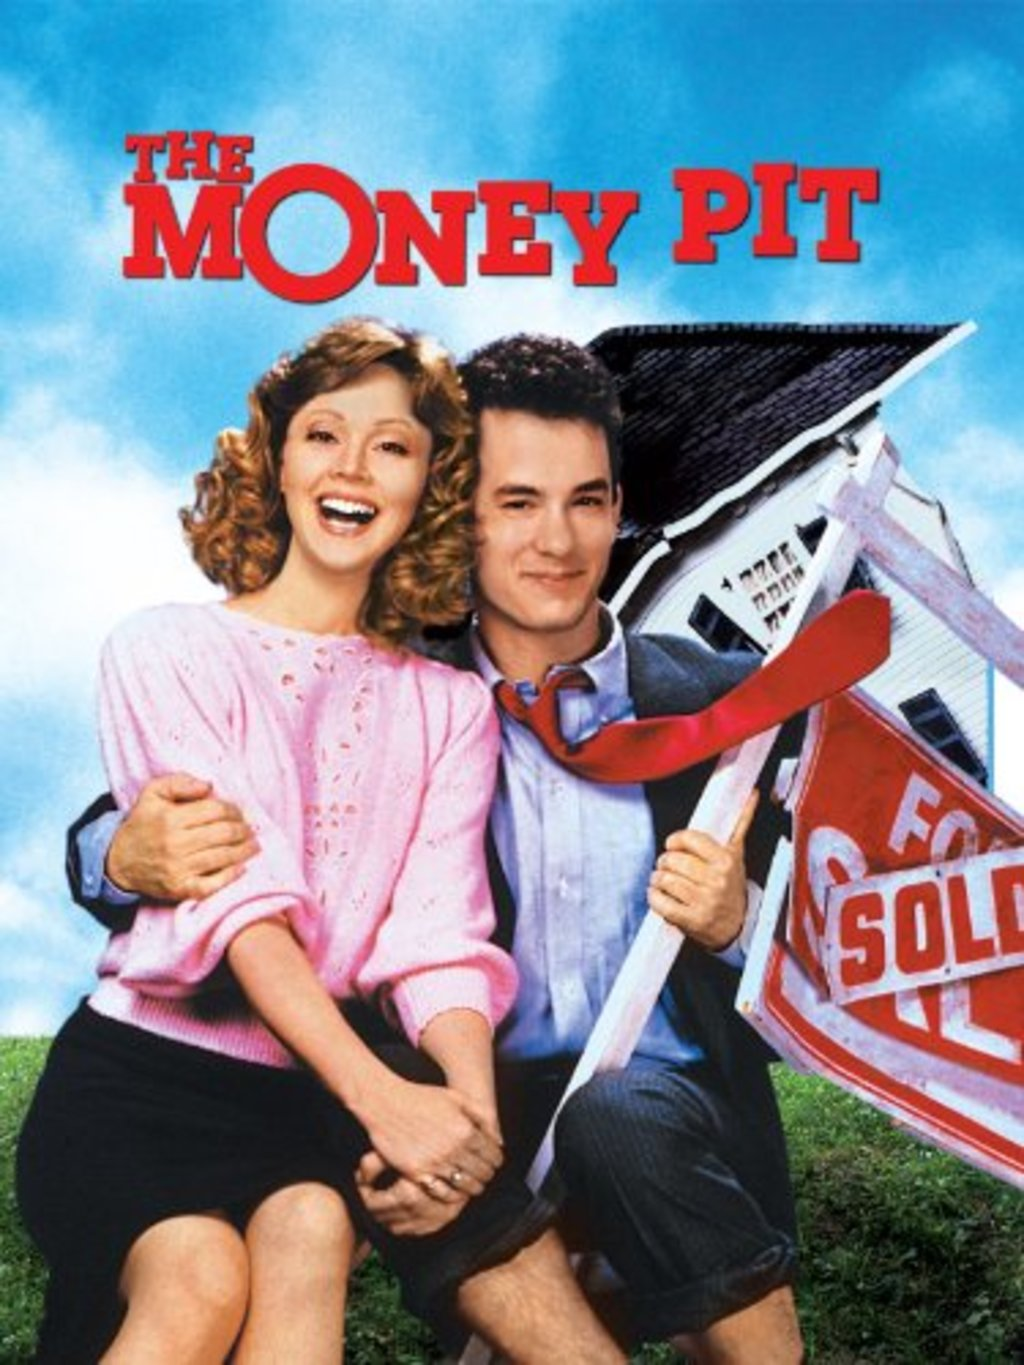 Watch The Money Pit On Netflix Today